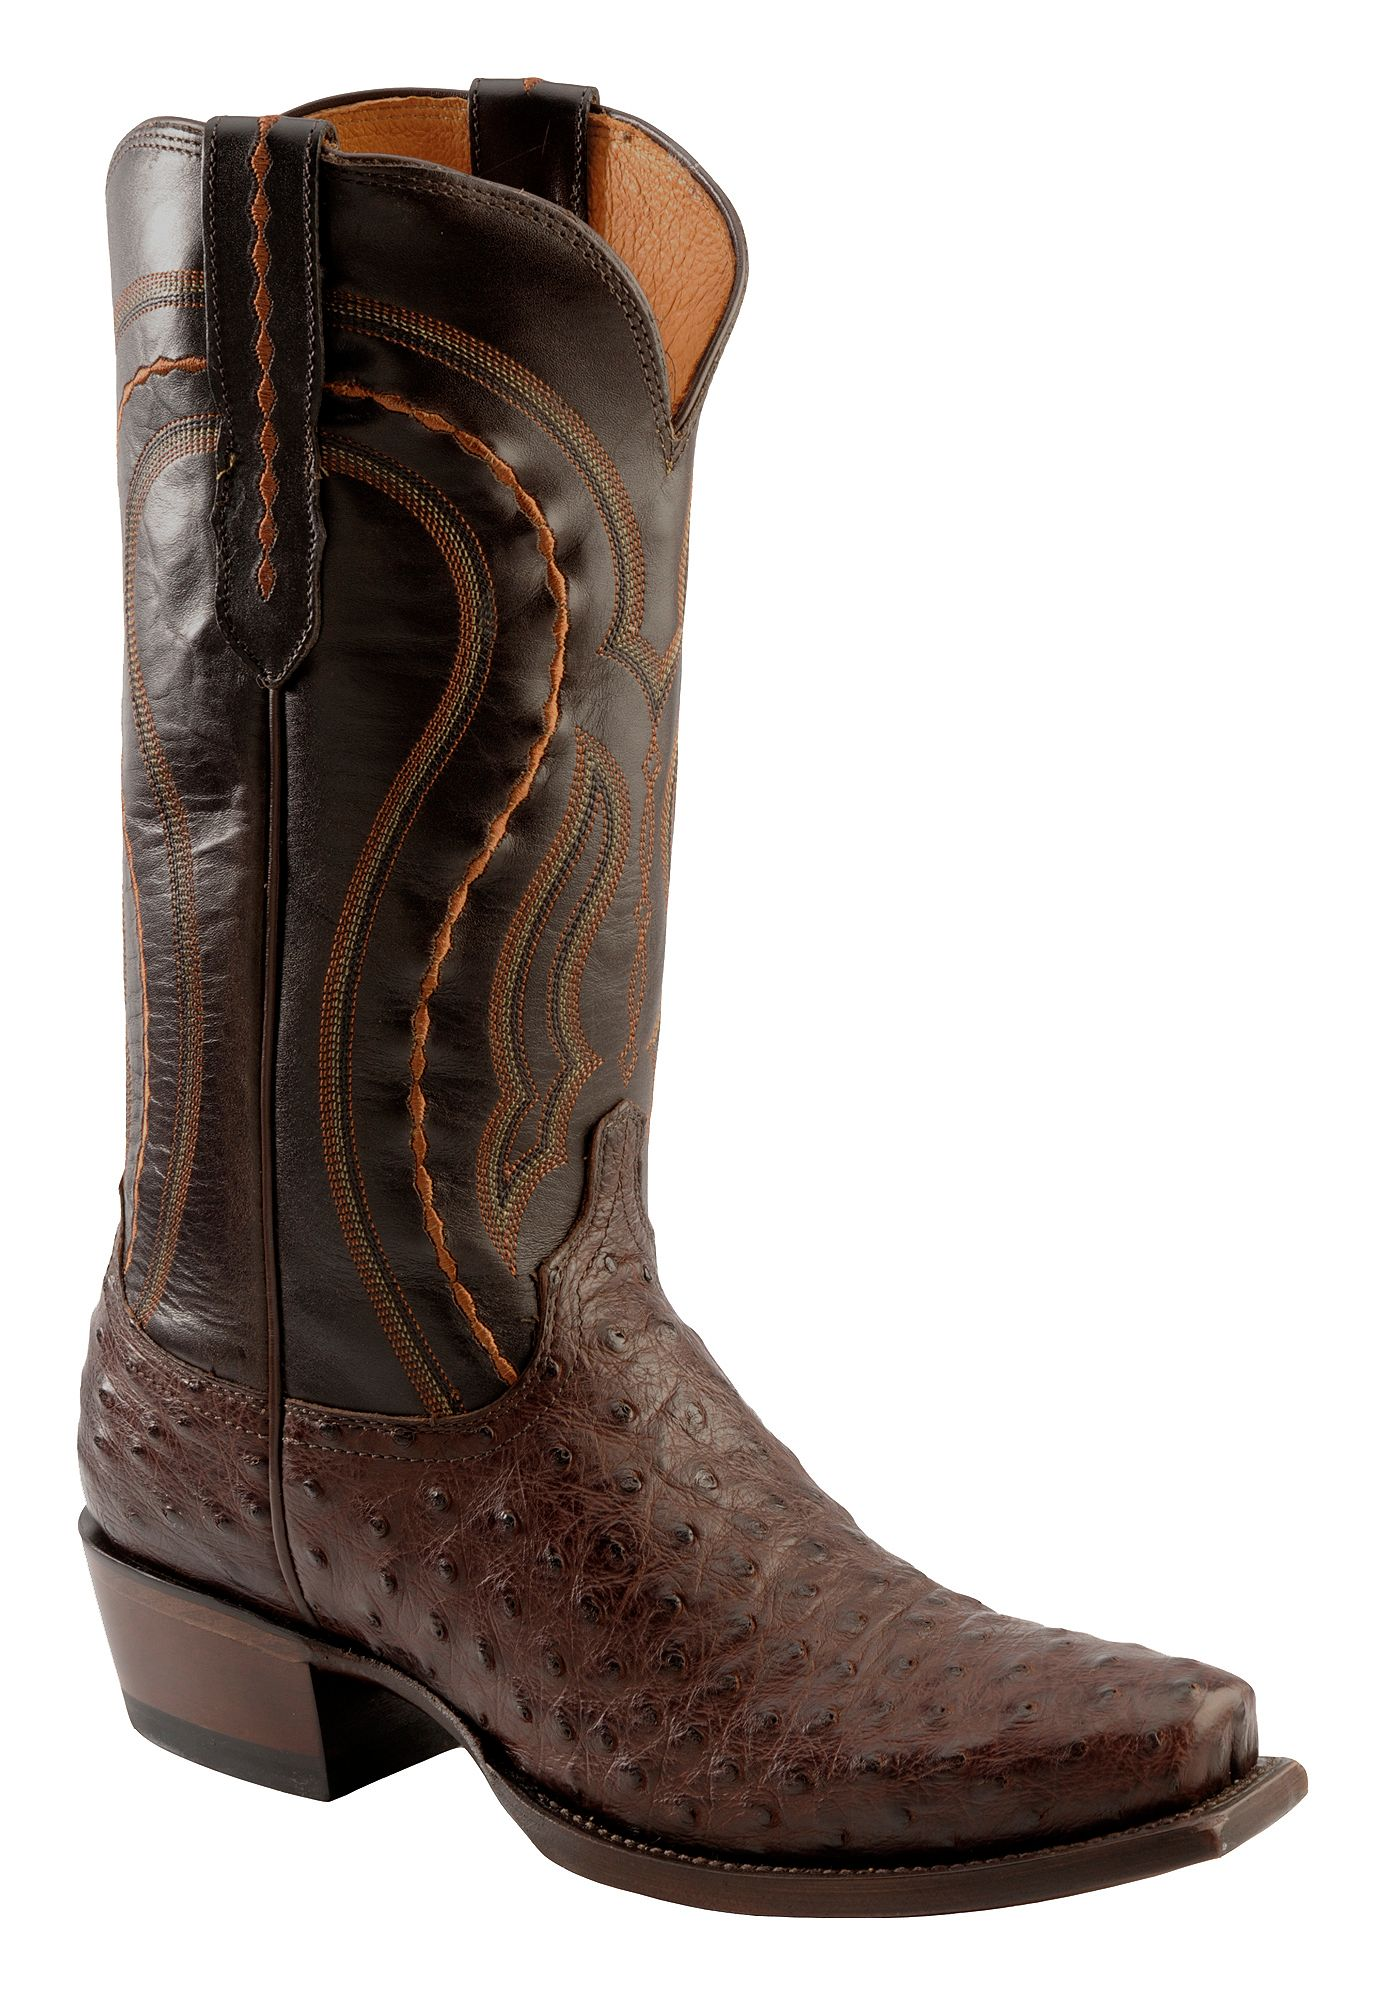 Lucchese Handmade 1883 Western Full Quill Ostrich Cowboy